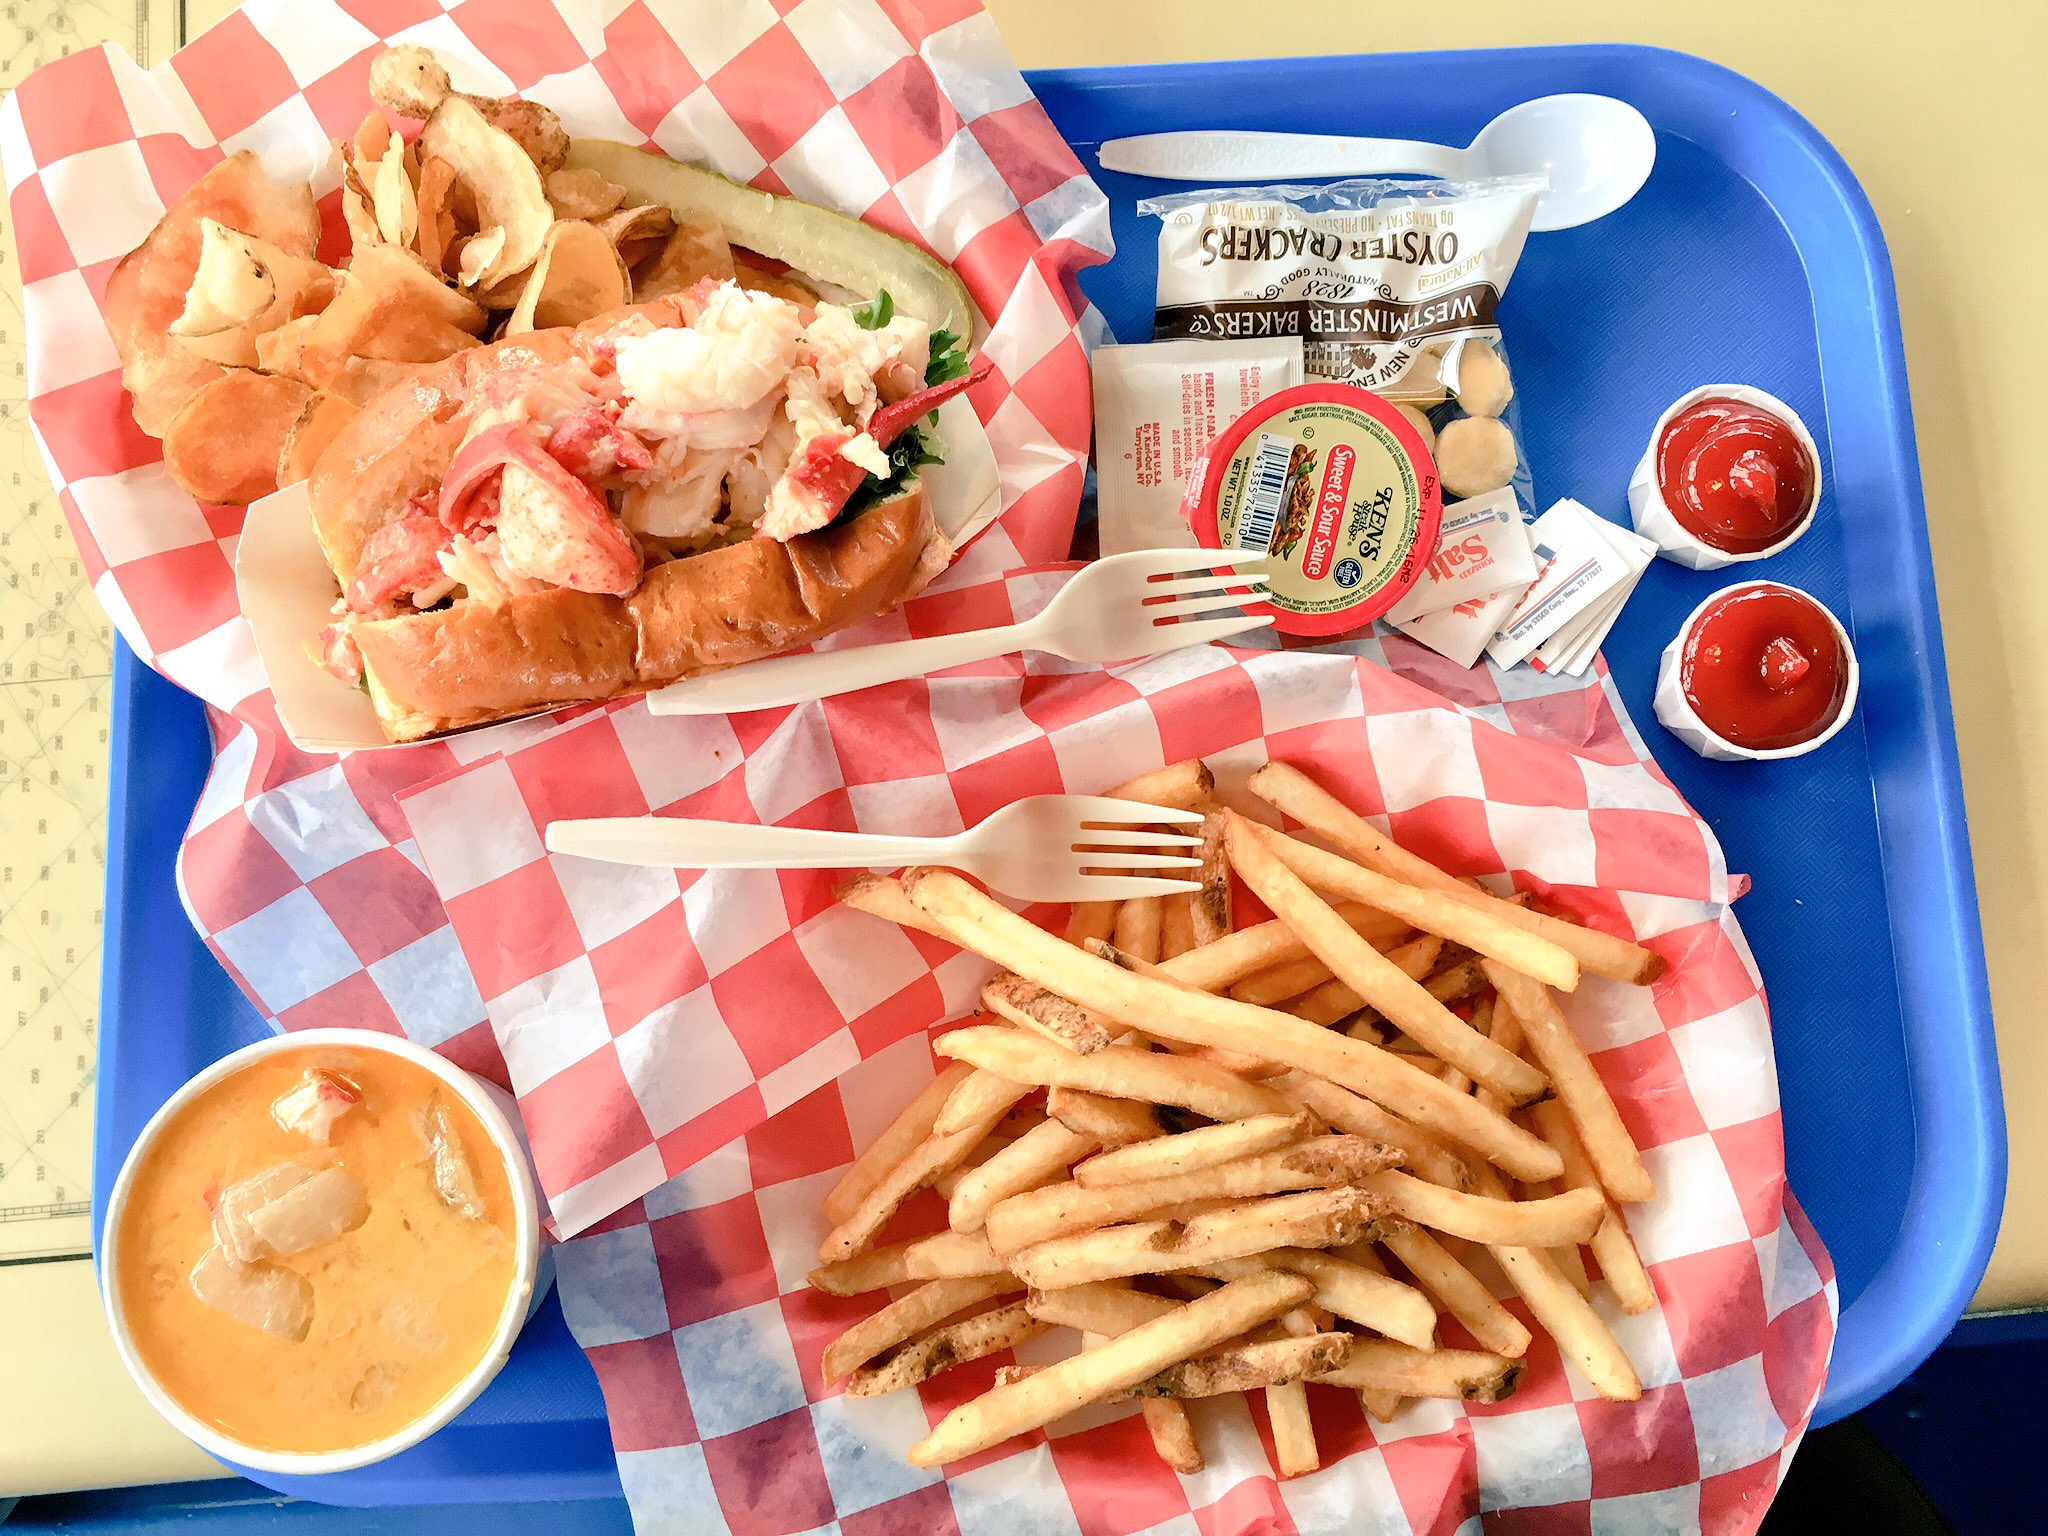 The infamous lobster roll at Beal's!